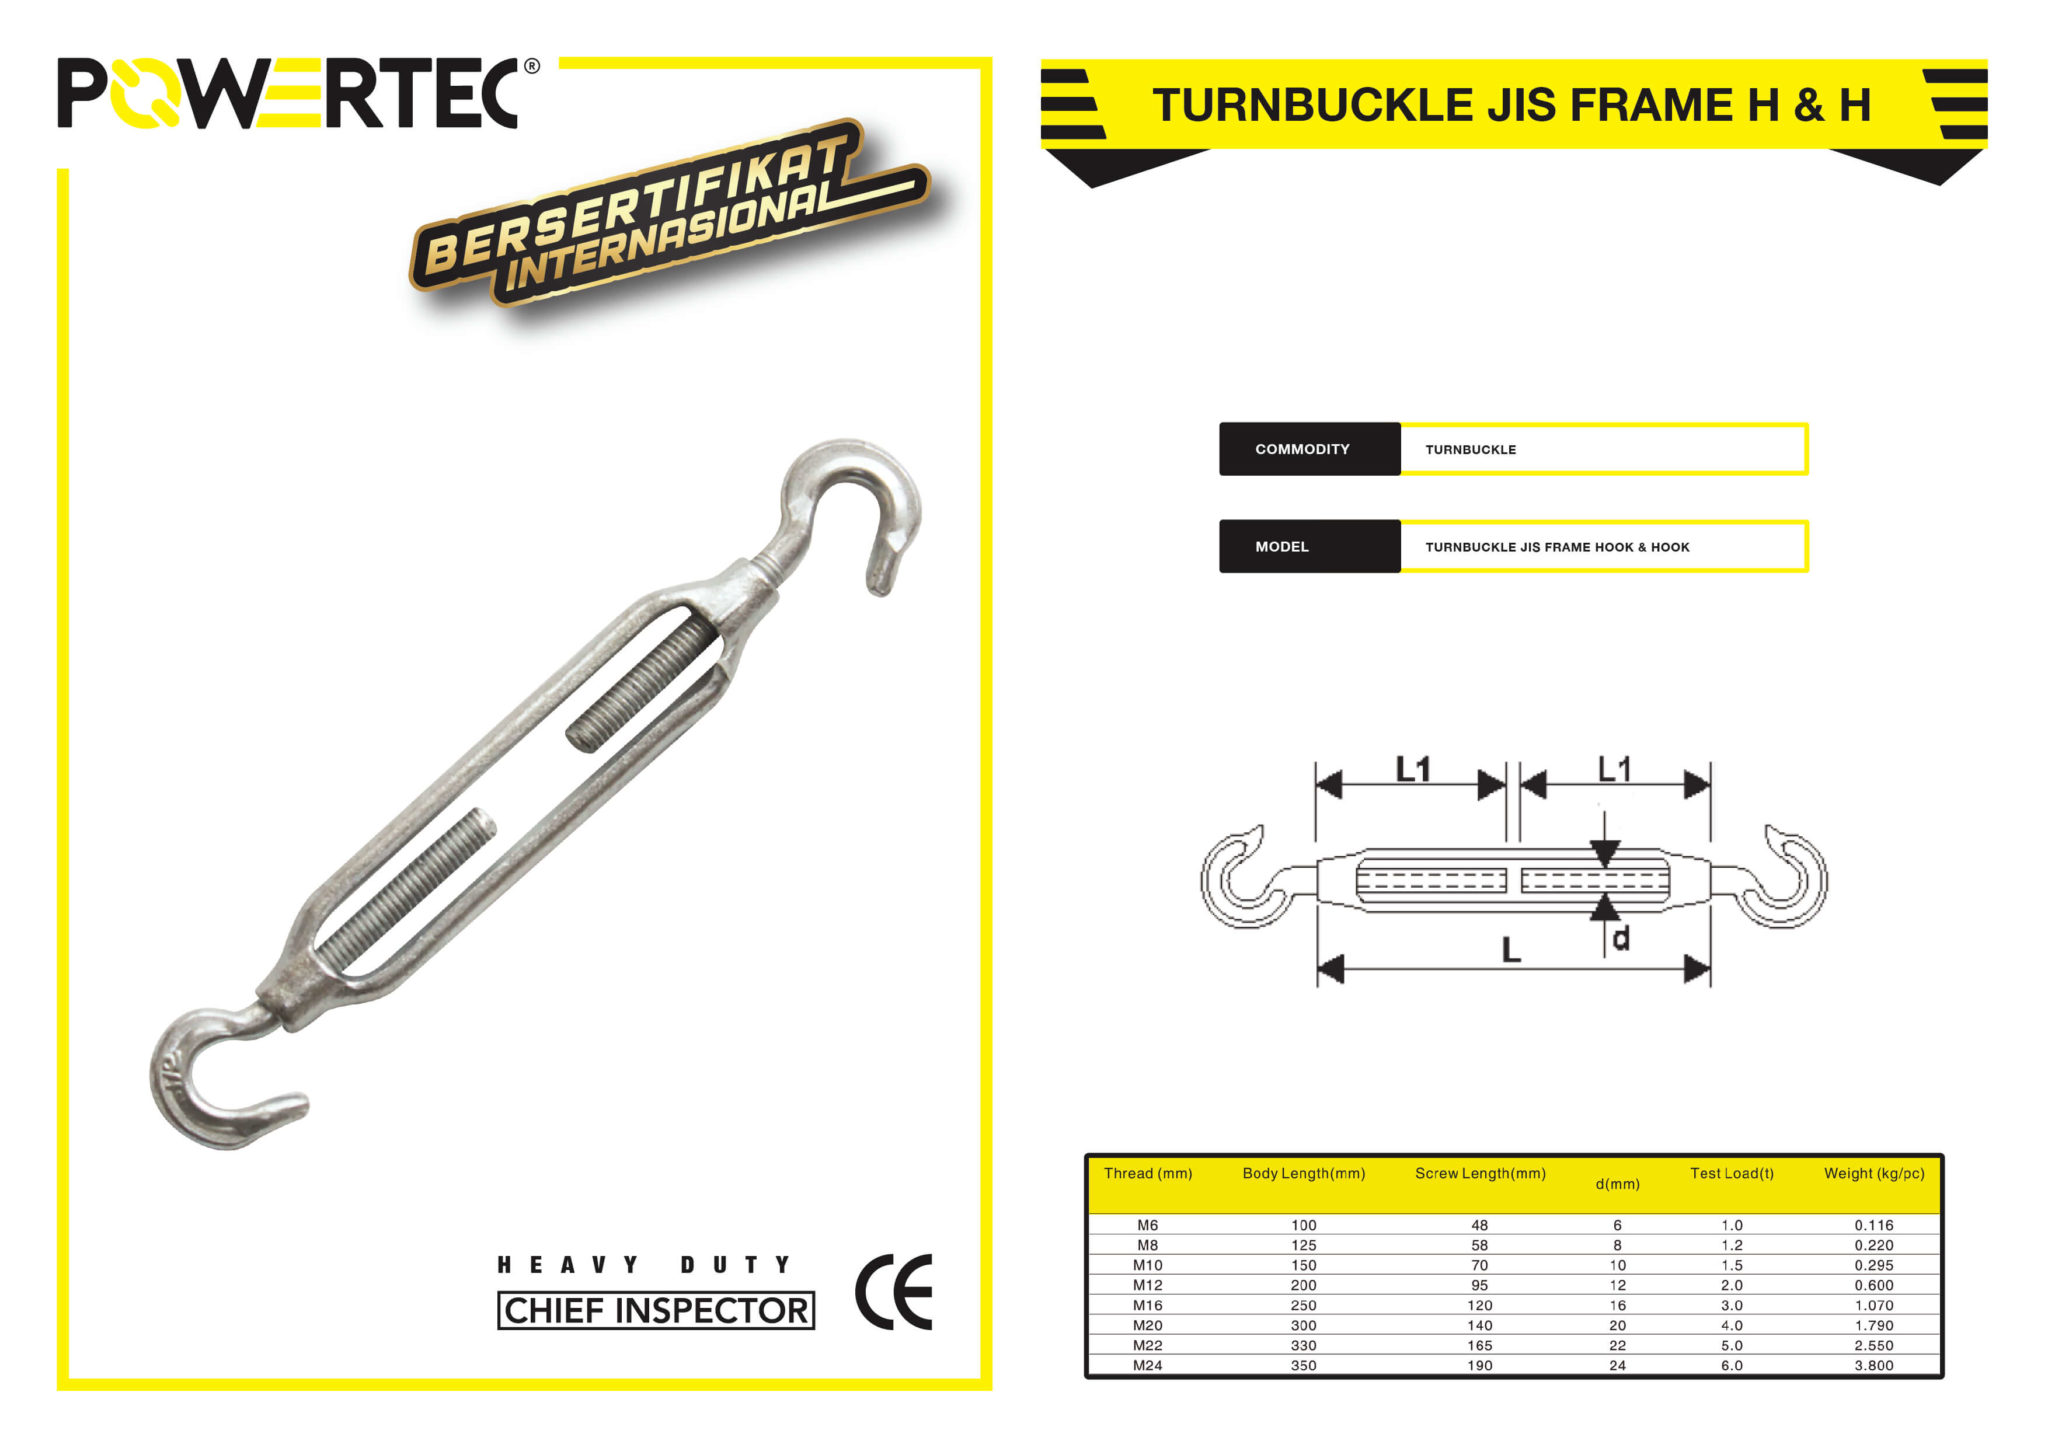 POWERTEC TURNBUCKLE JIS FRAME HOOK & HOOK BROCHURE